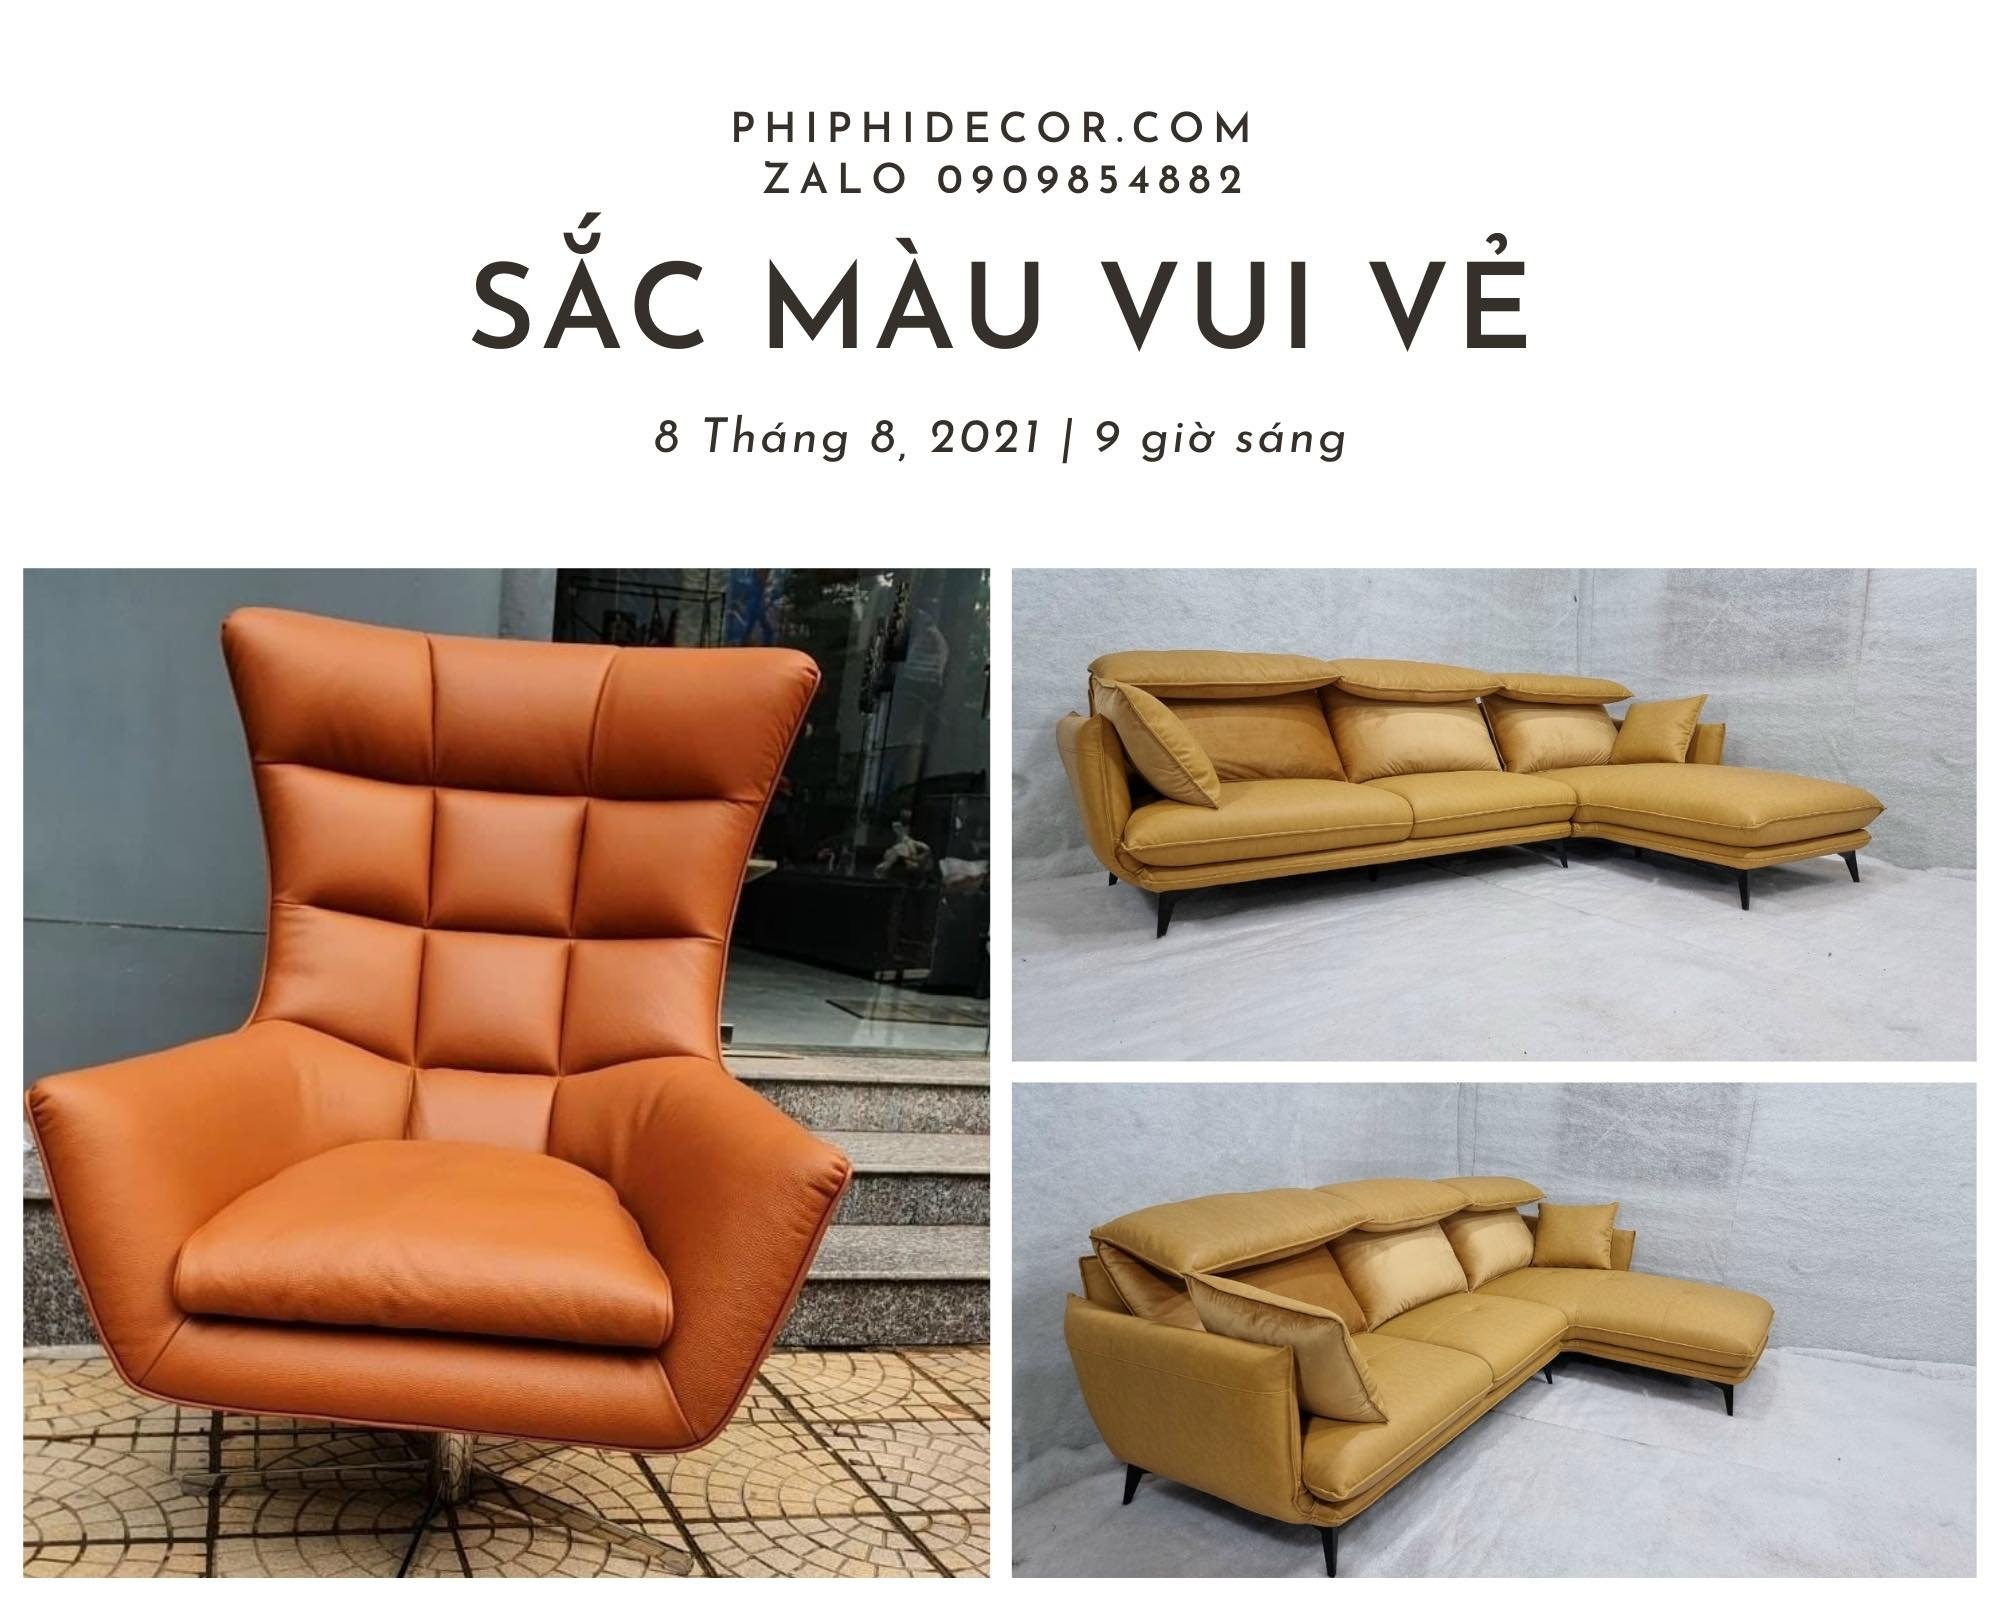 NỘI THẤT RỜI TAILOR MADE